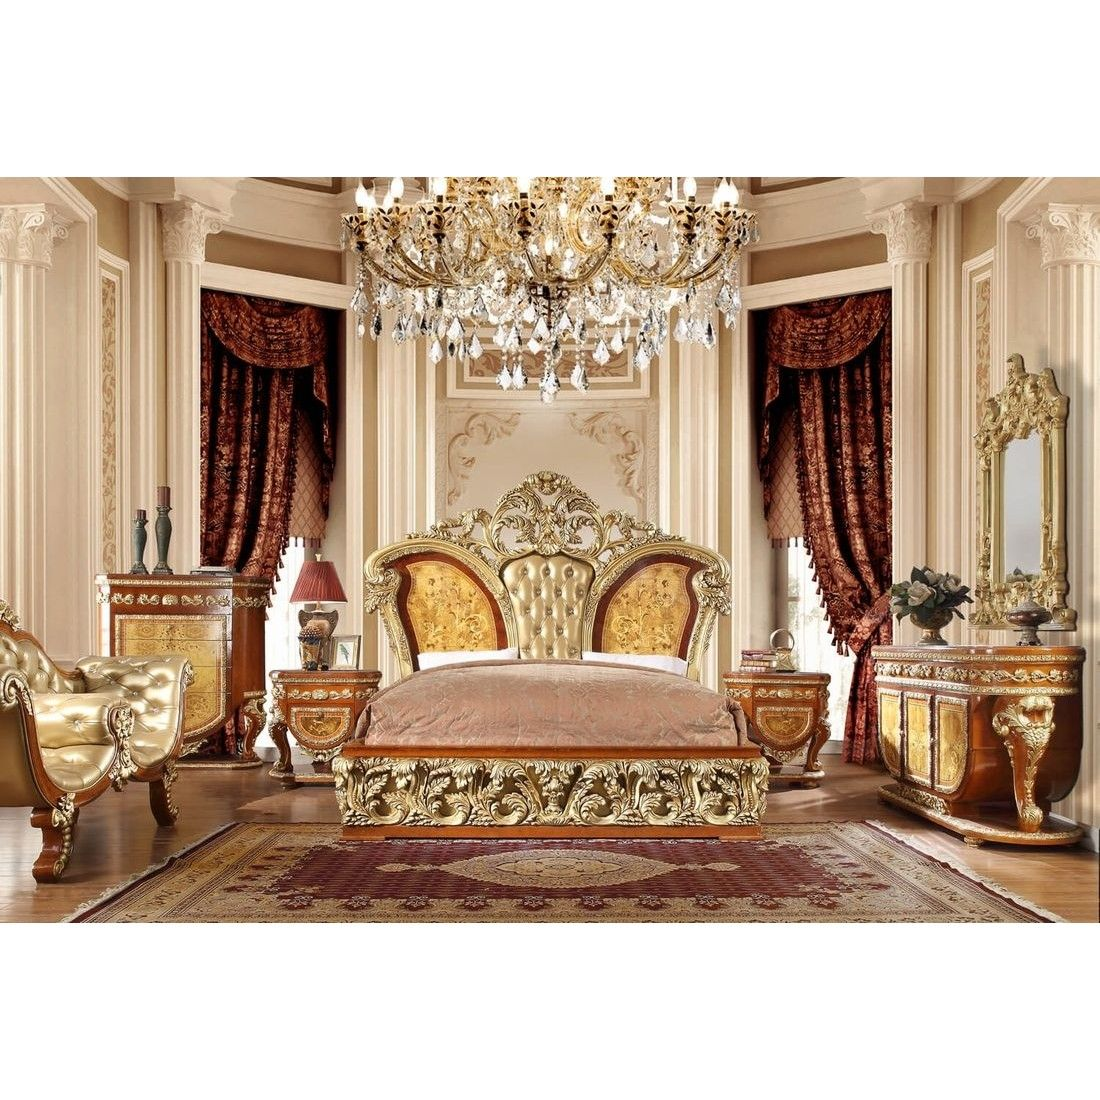 Homey Design HD-8024 4pc California King Bedroom Set In